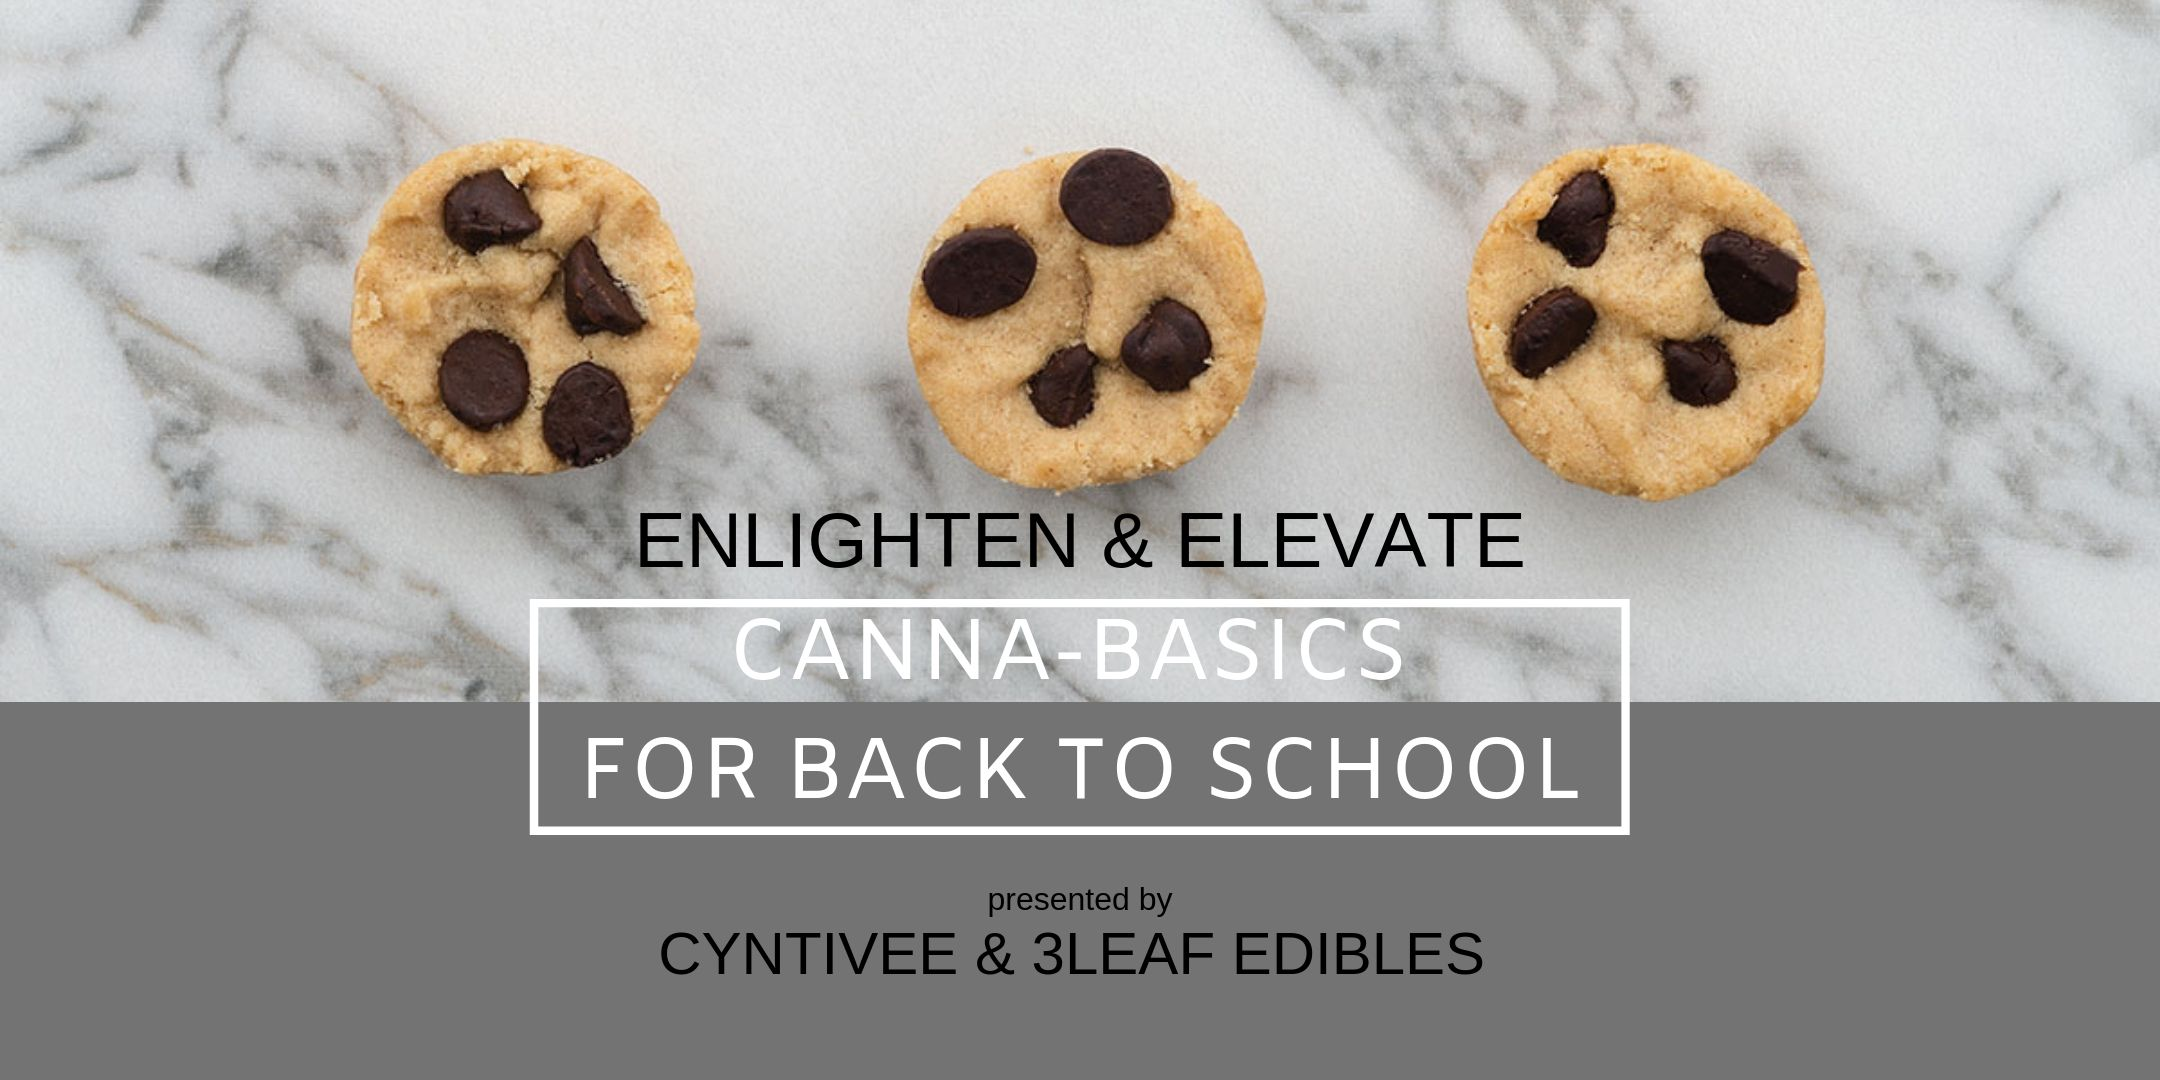 Enlighten & Elevate | Back to School with Canna-Basics